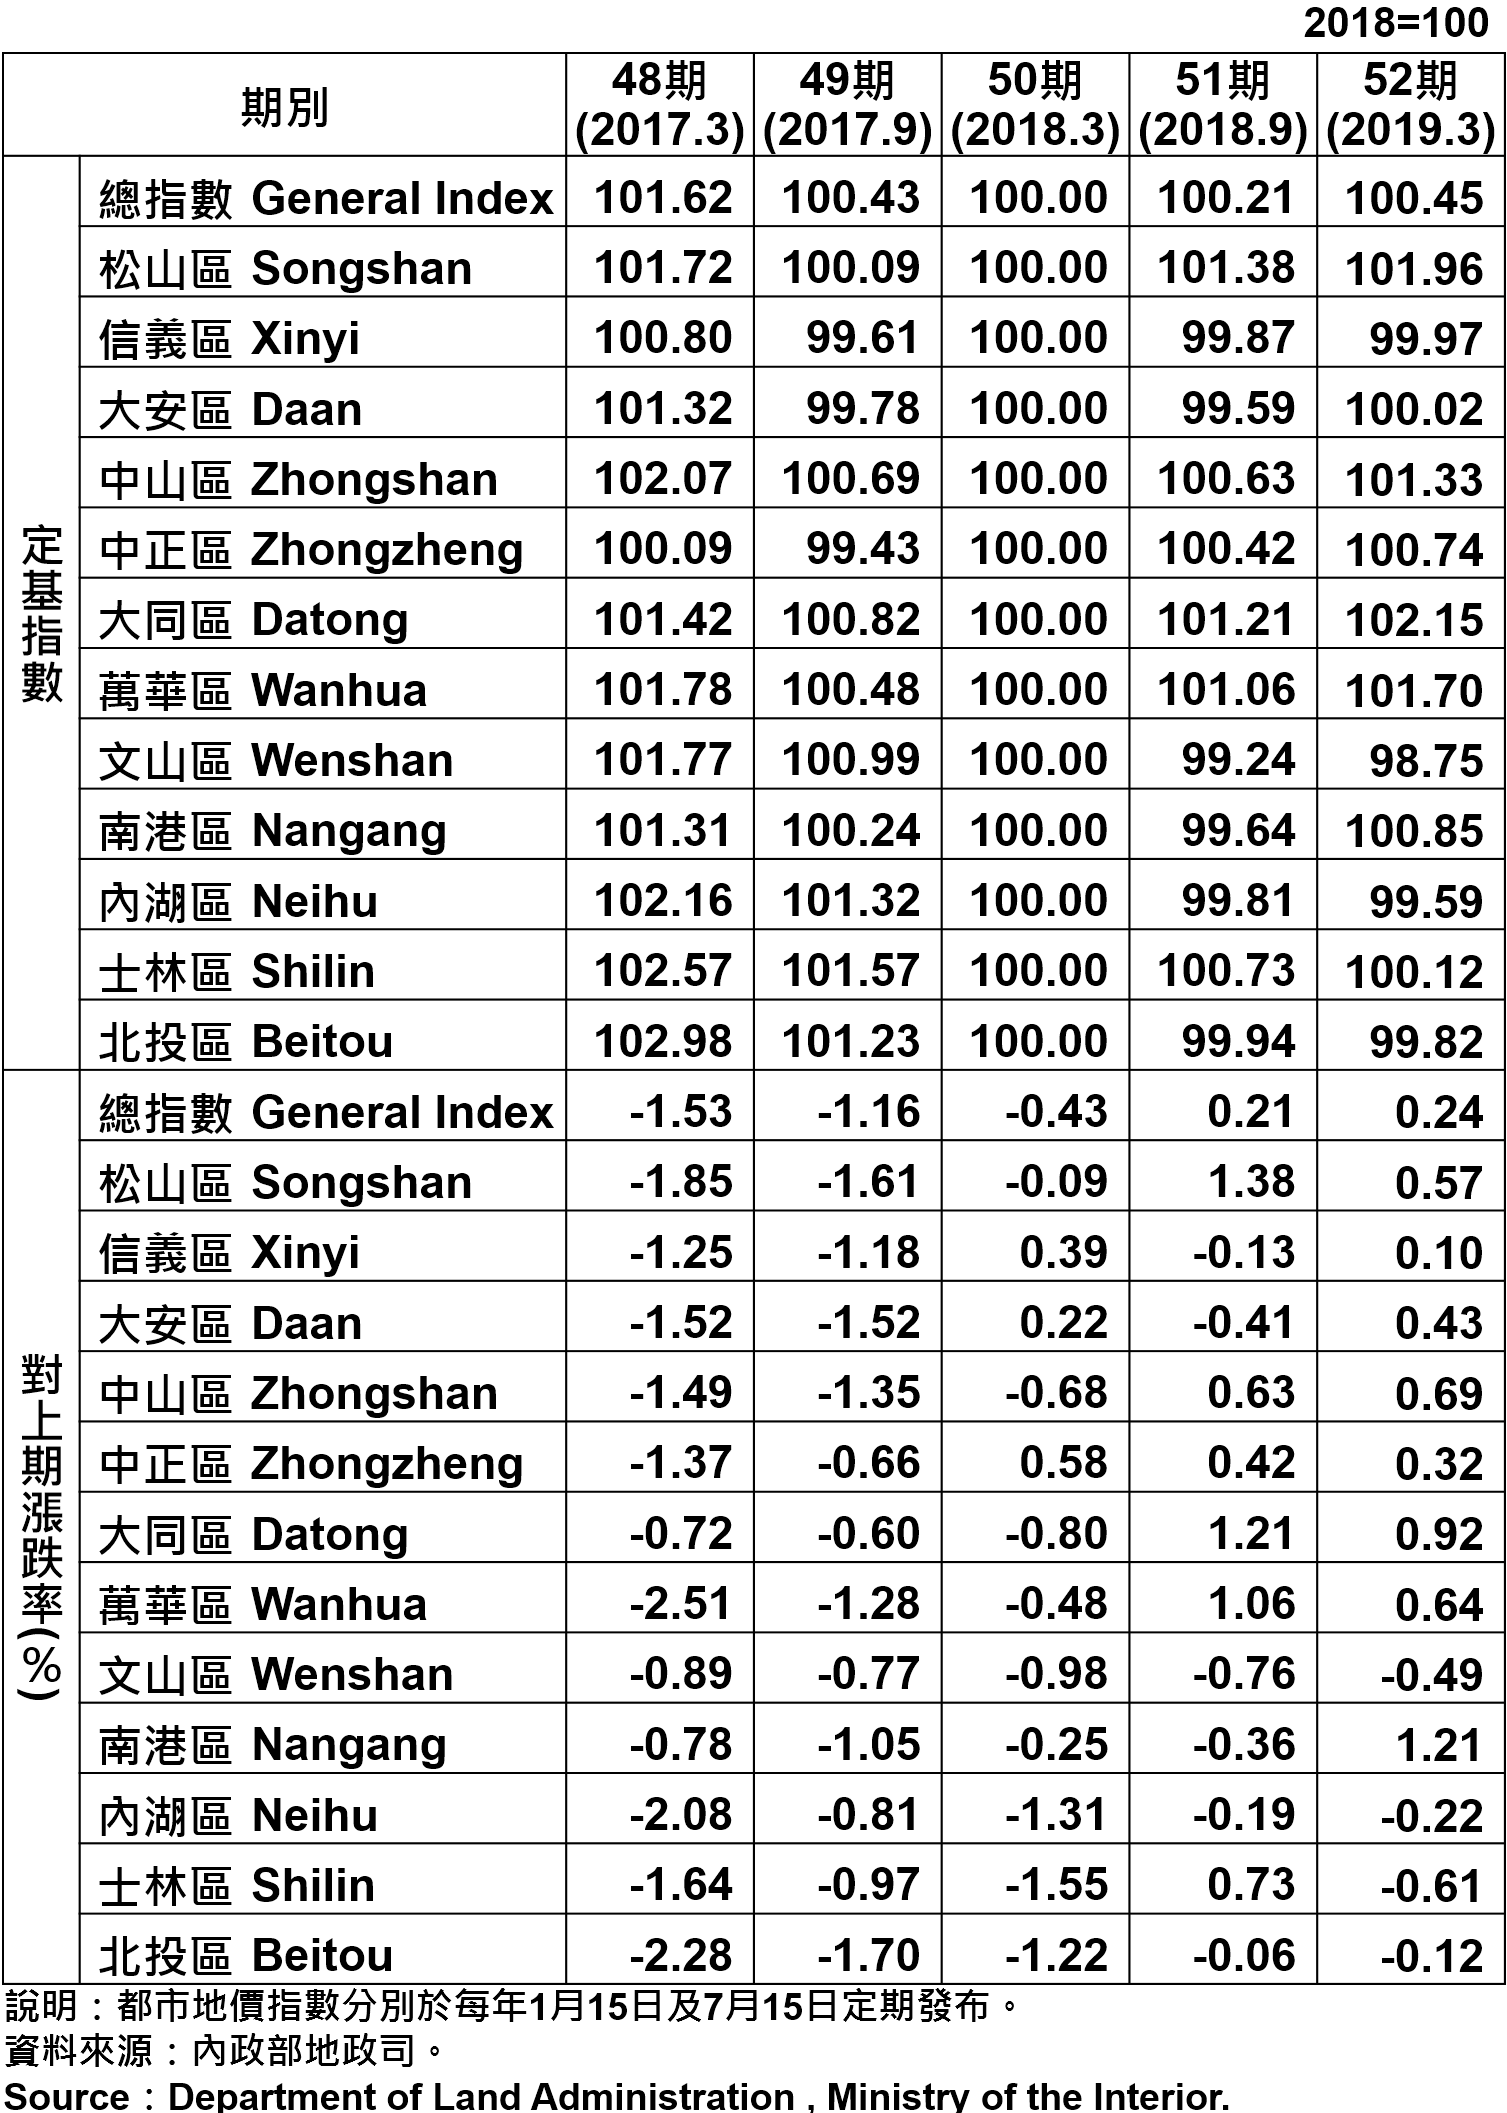 臺北市都市地價指數分區表—52期 Taipei's Urban Land Price Indexes by Districts—52th